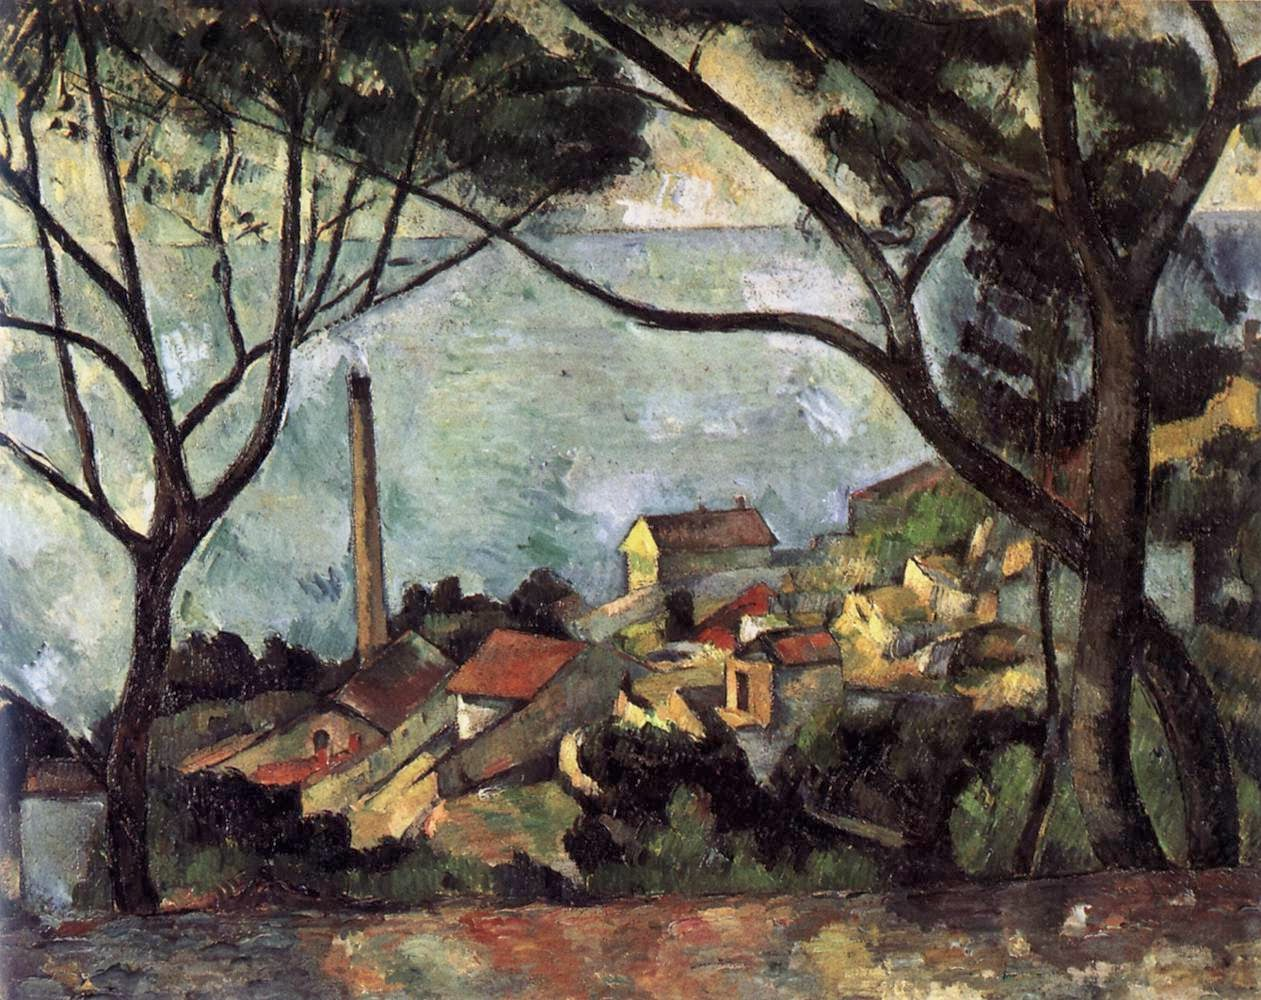 paul cezanne Paul cézanne road in provence watercolour and graphite on tan wove paper x cm art institute of chicago il find this pin and more on paul cezanne by justin farmer cezanne watercolor.